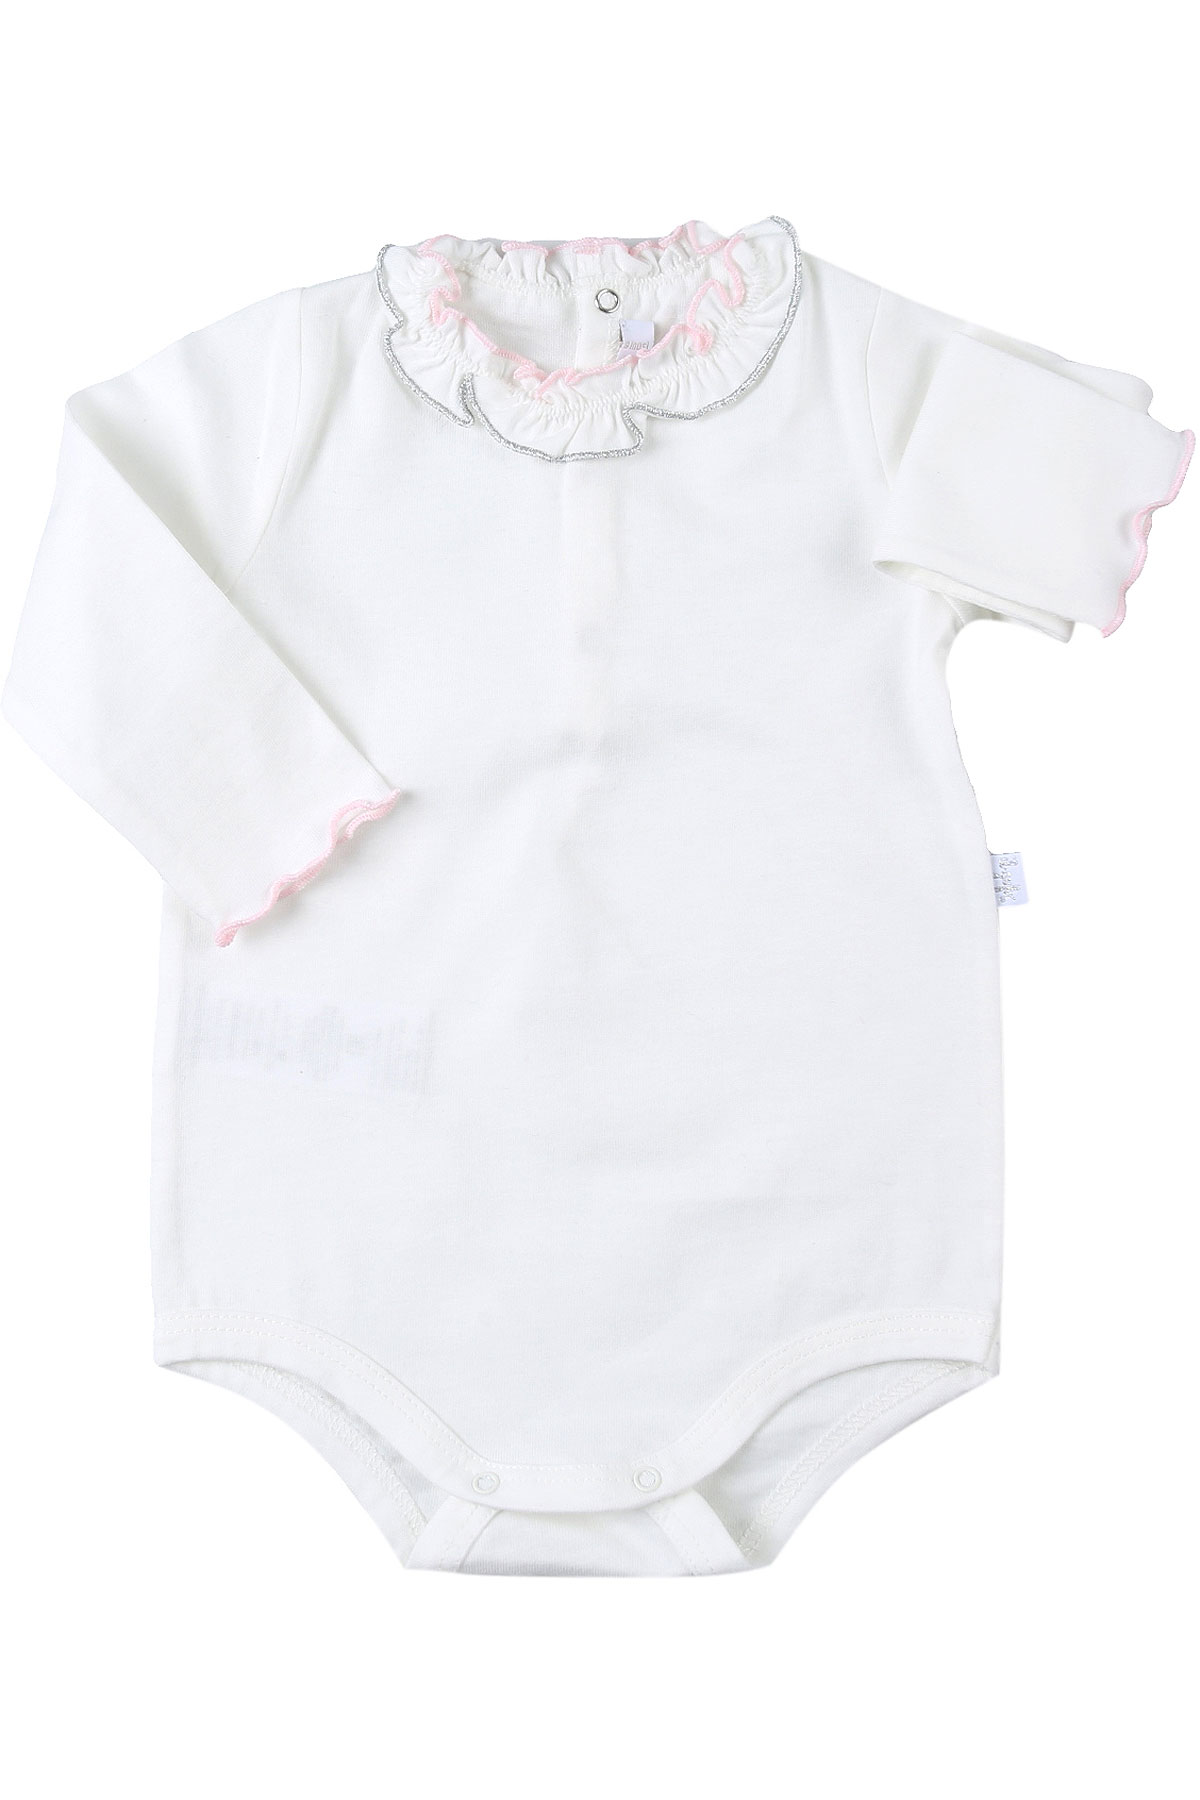 Il Gufo Baby Bodysuits & Onesies for Girls On Sale, White, Cotton, 2019, 18M 3M 6M